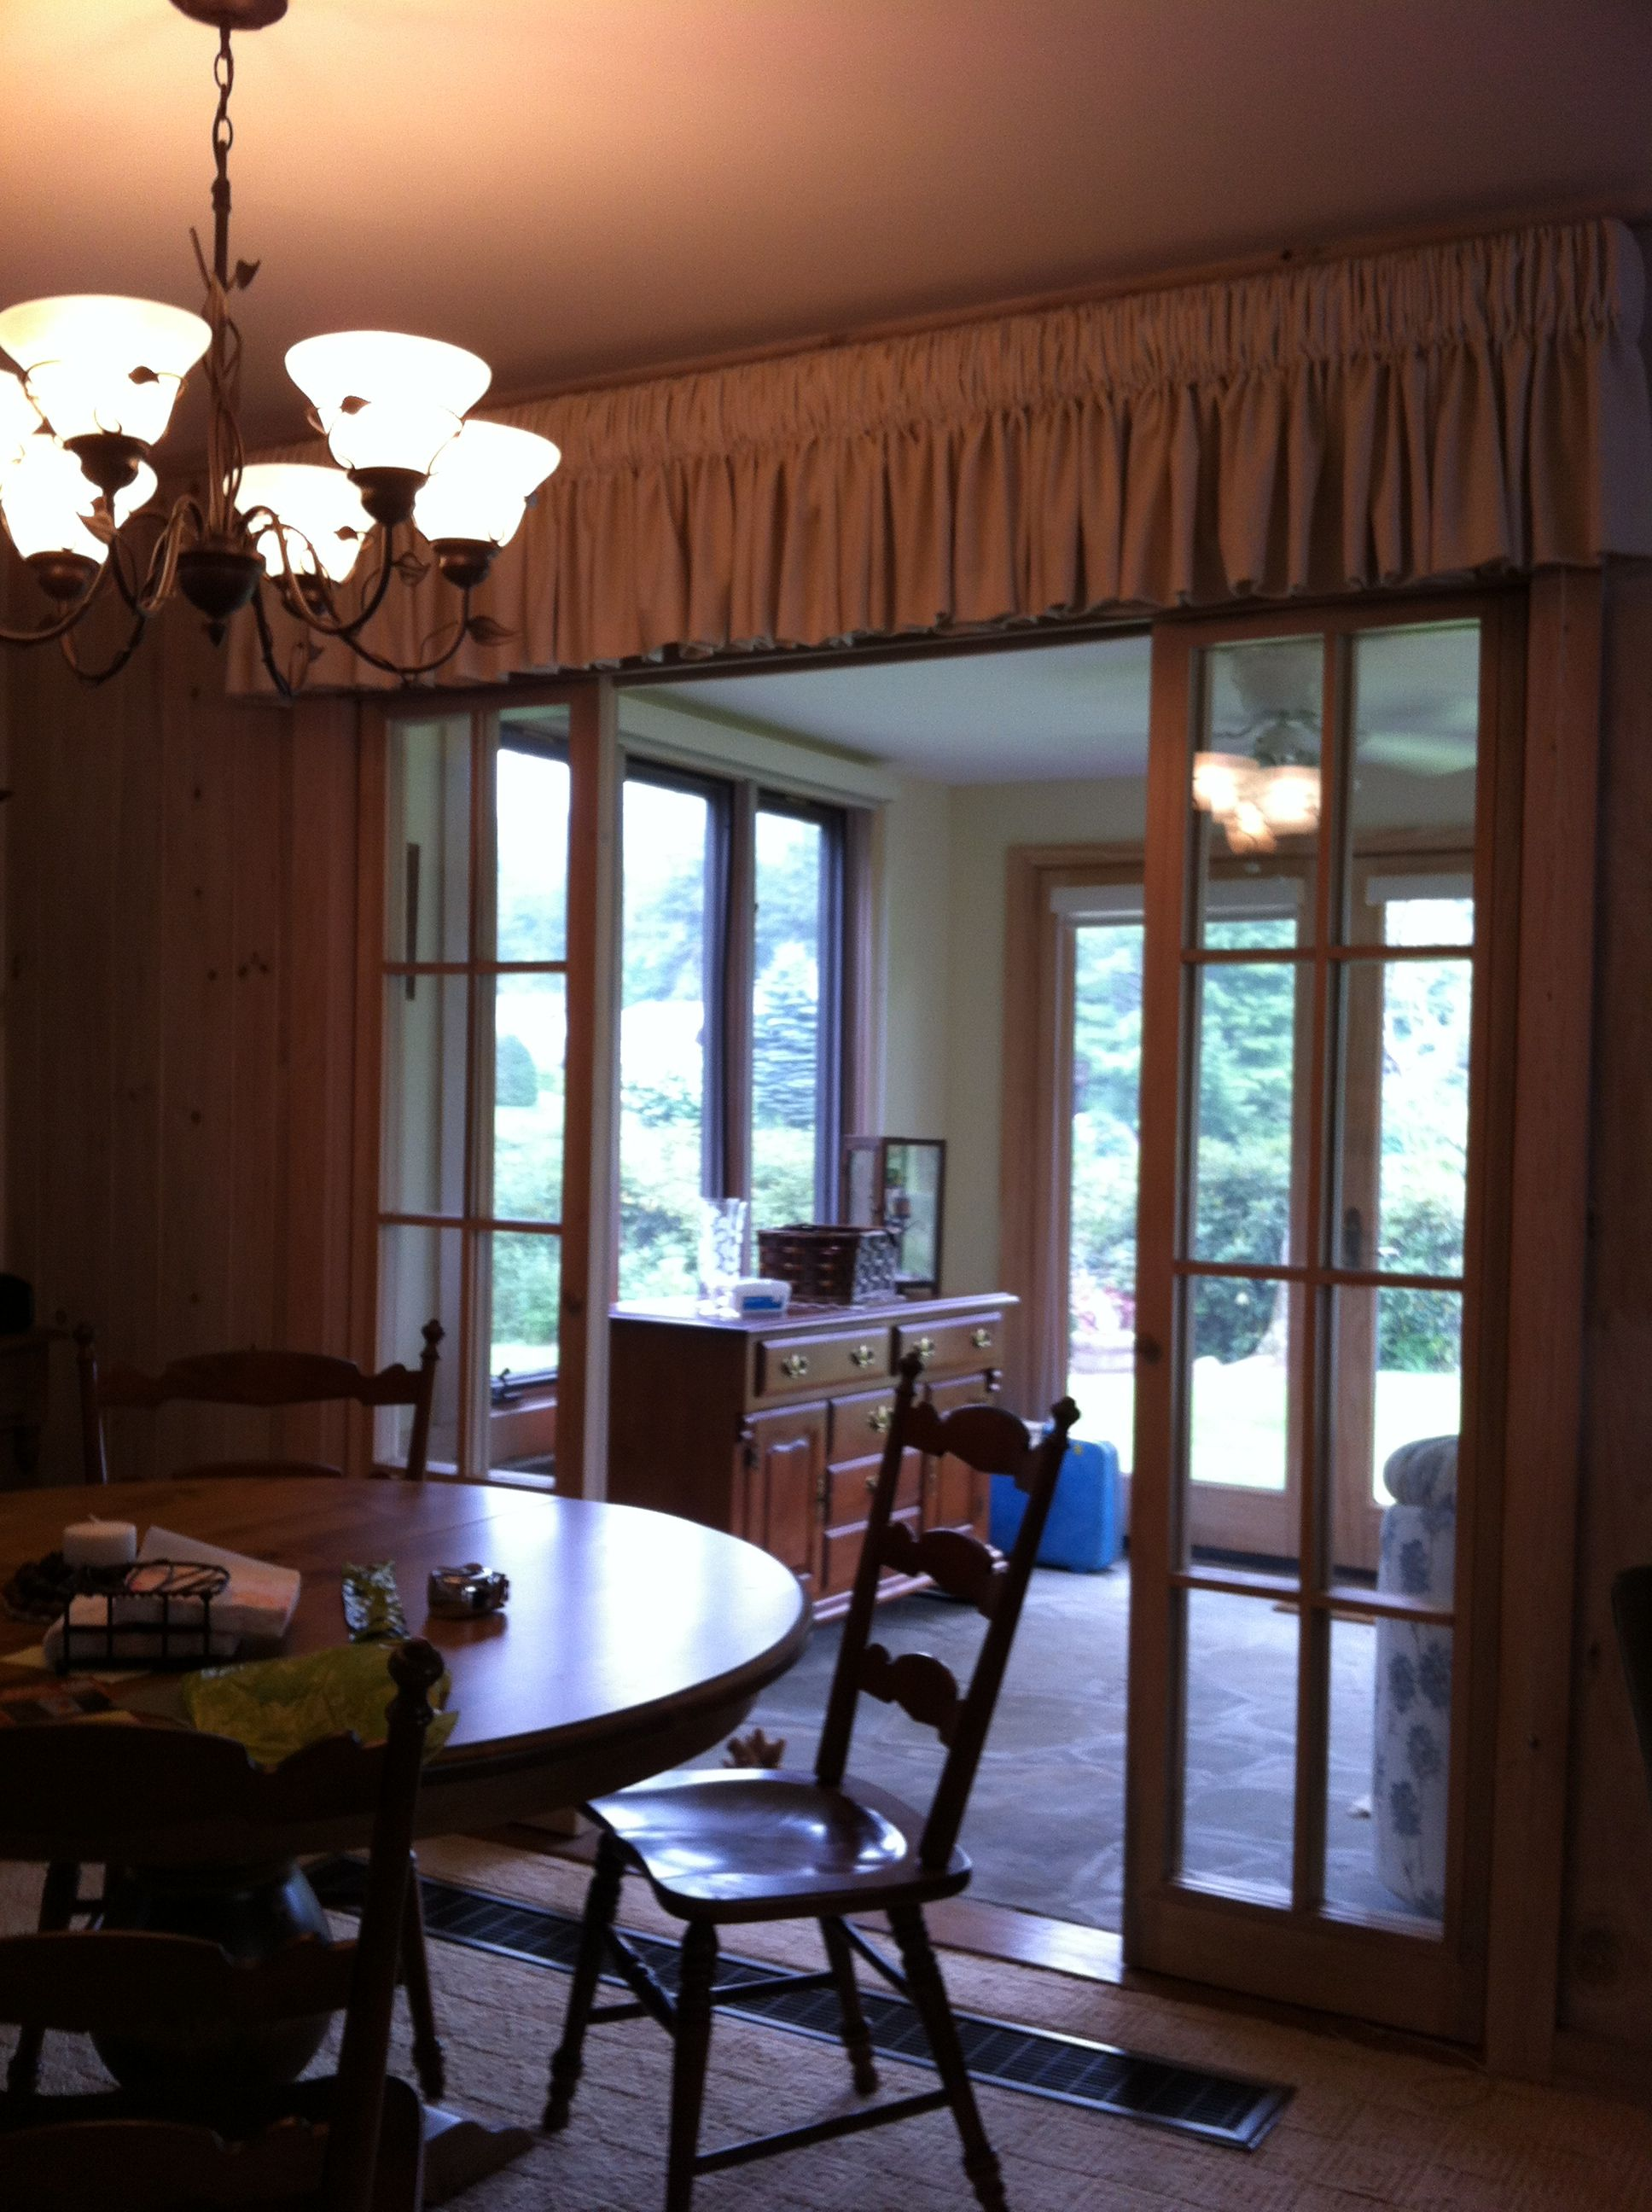 Dining room to sunroom (With images) | Home decor, Home ...